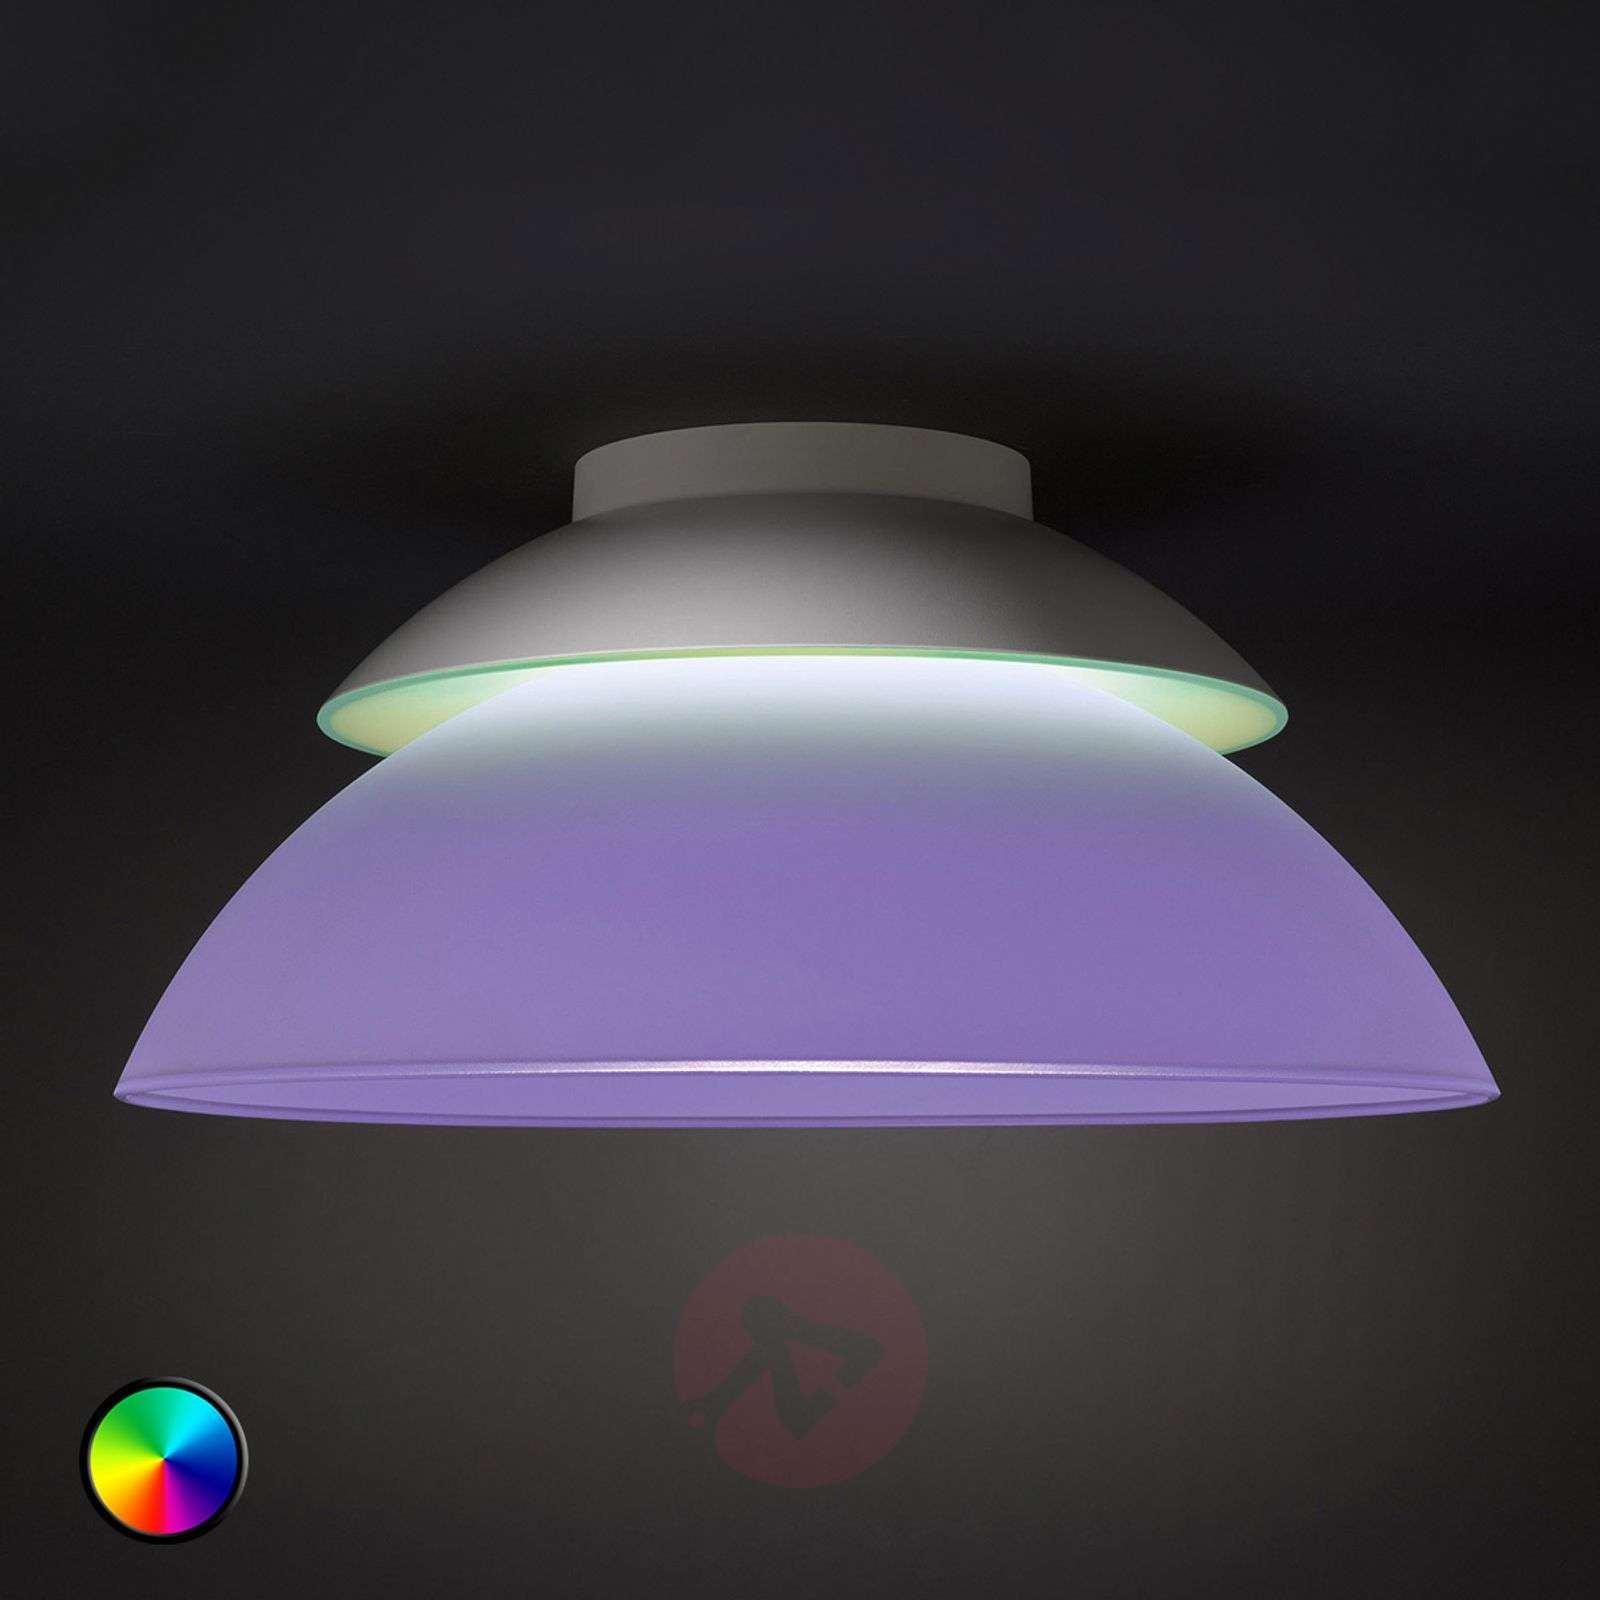 Plafoniere Ufficio Philips : Acquista plafoniera philips hue beyond lampade.it